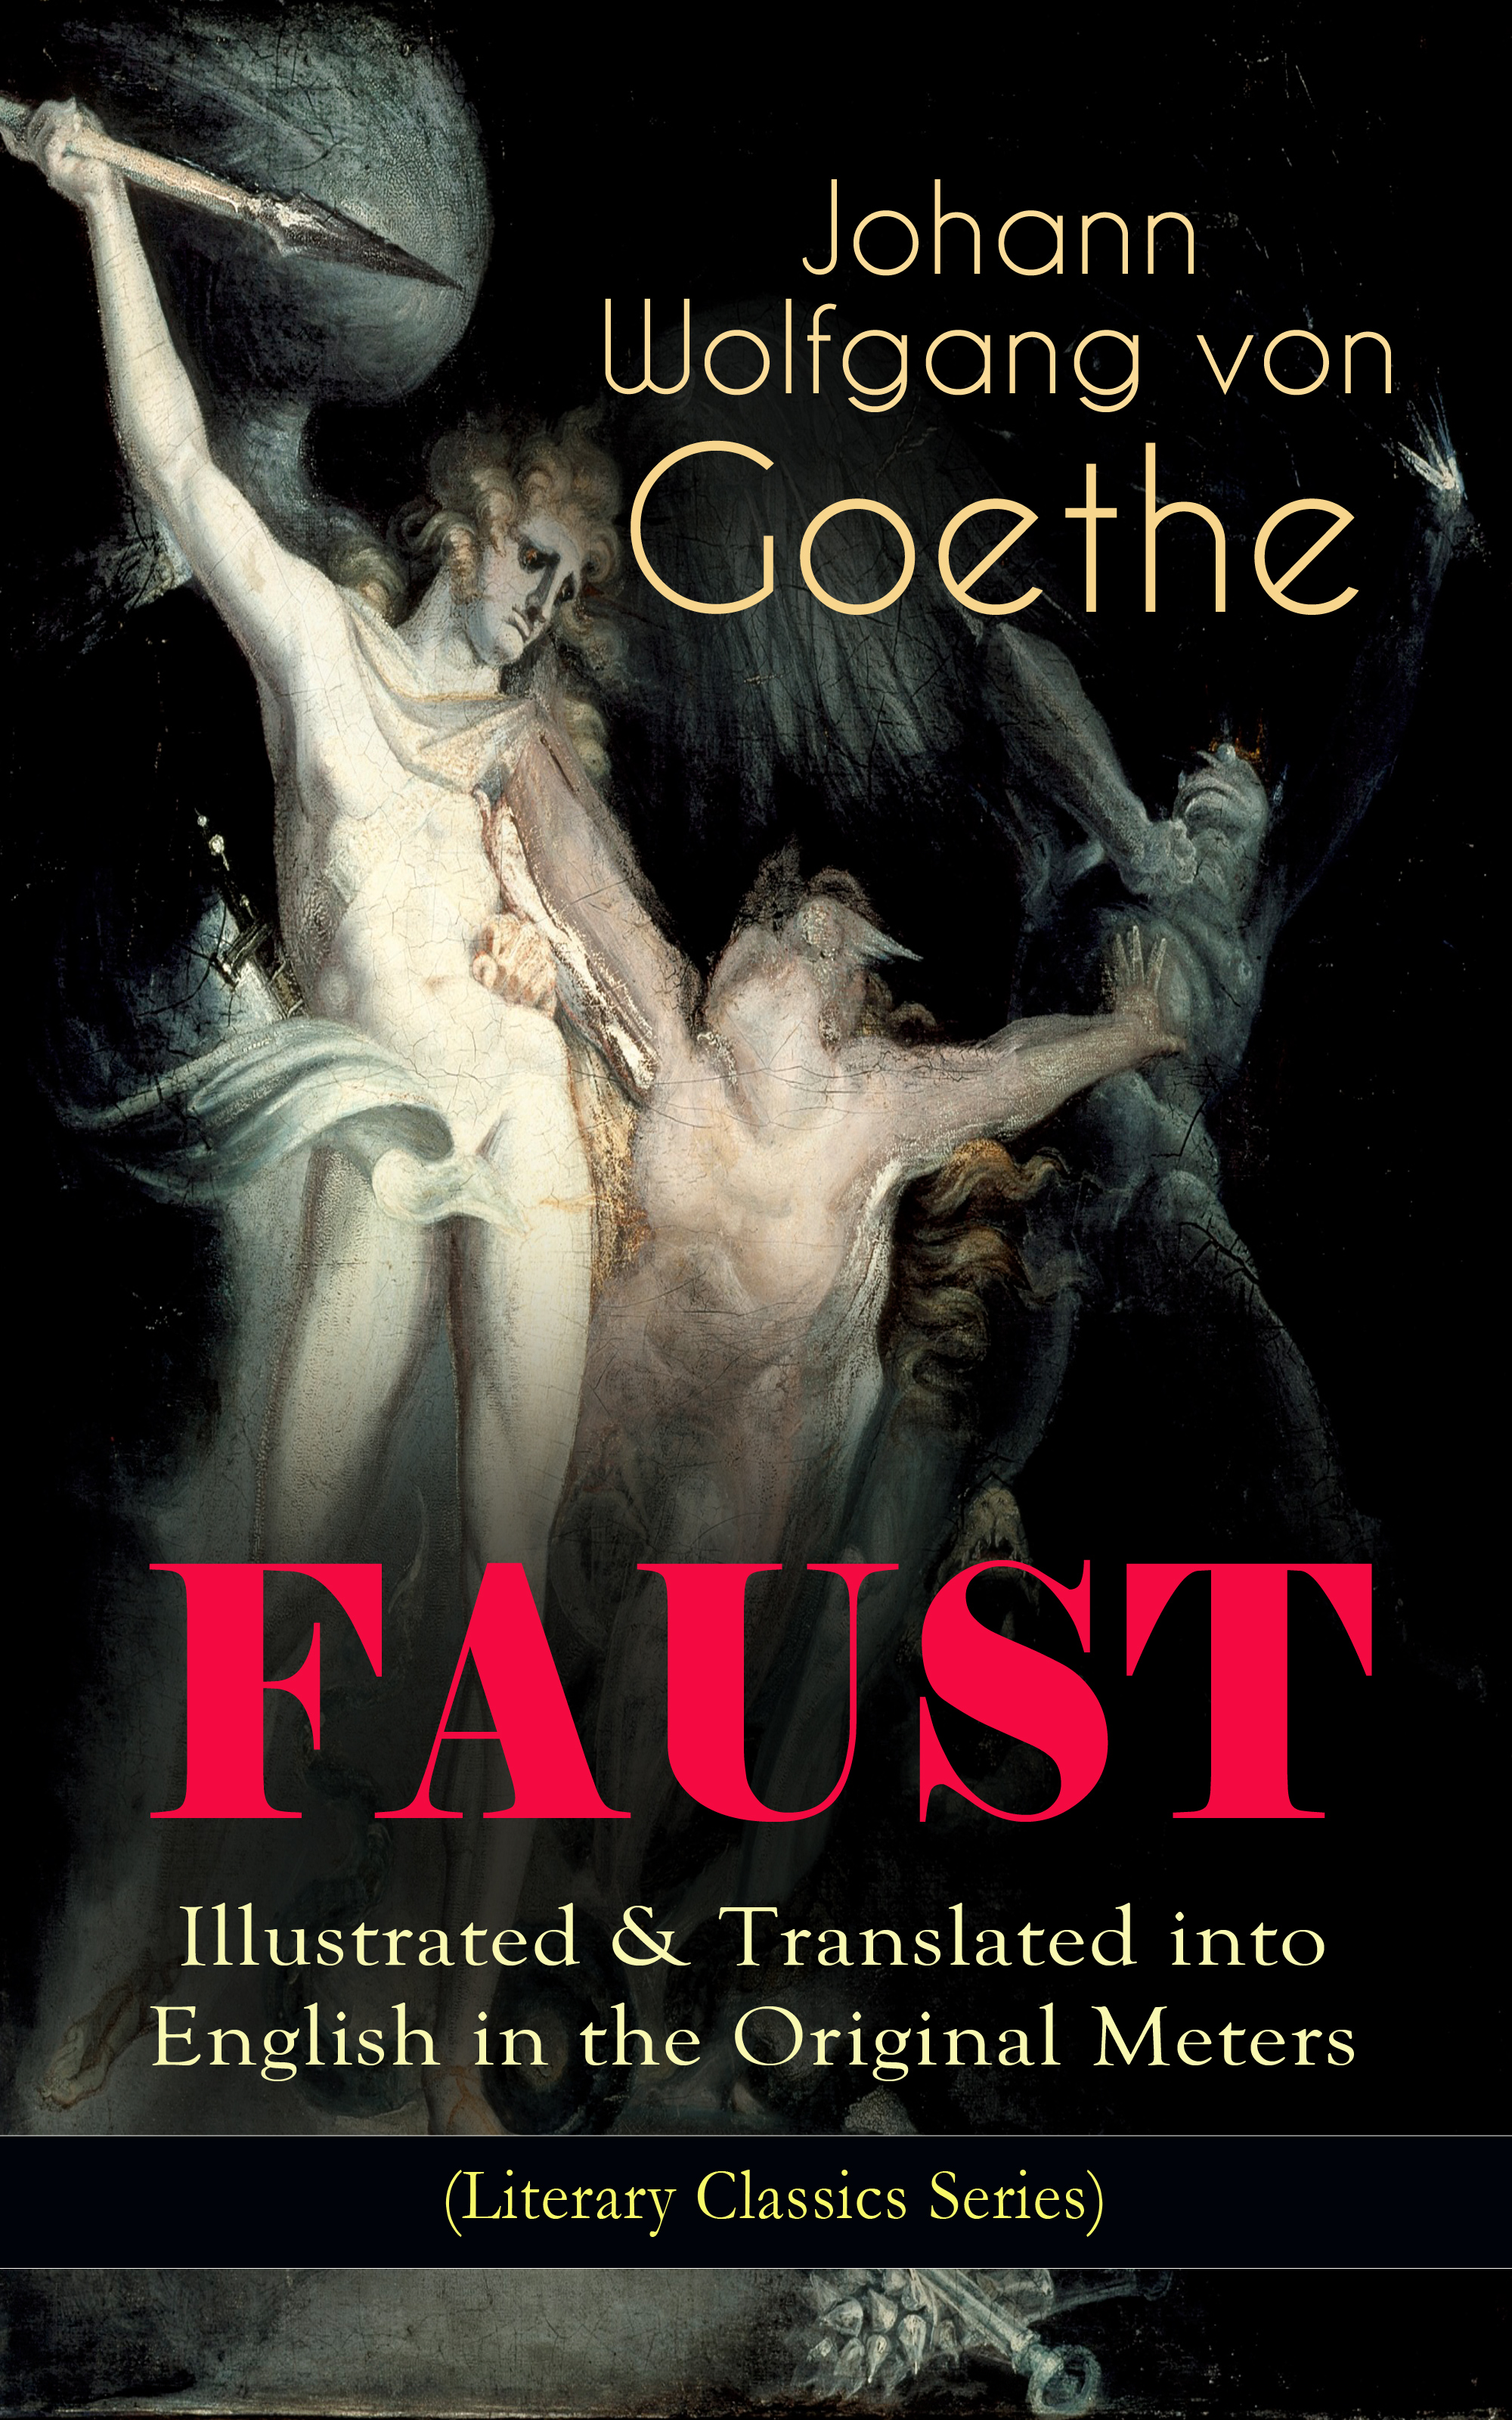 FAUST - Illustrated & Translated into English in the Original Meters (Literary Classics Series)